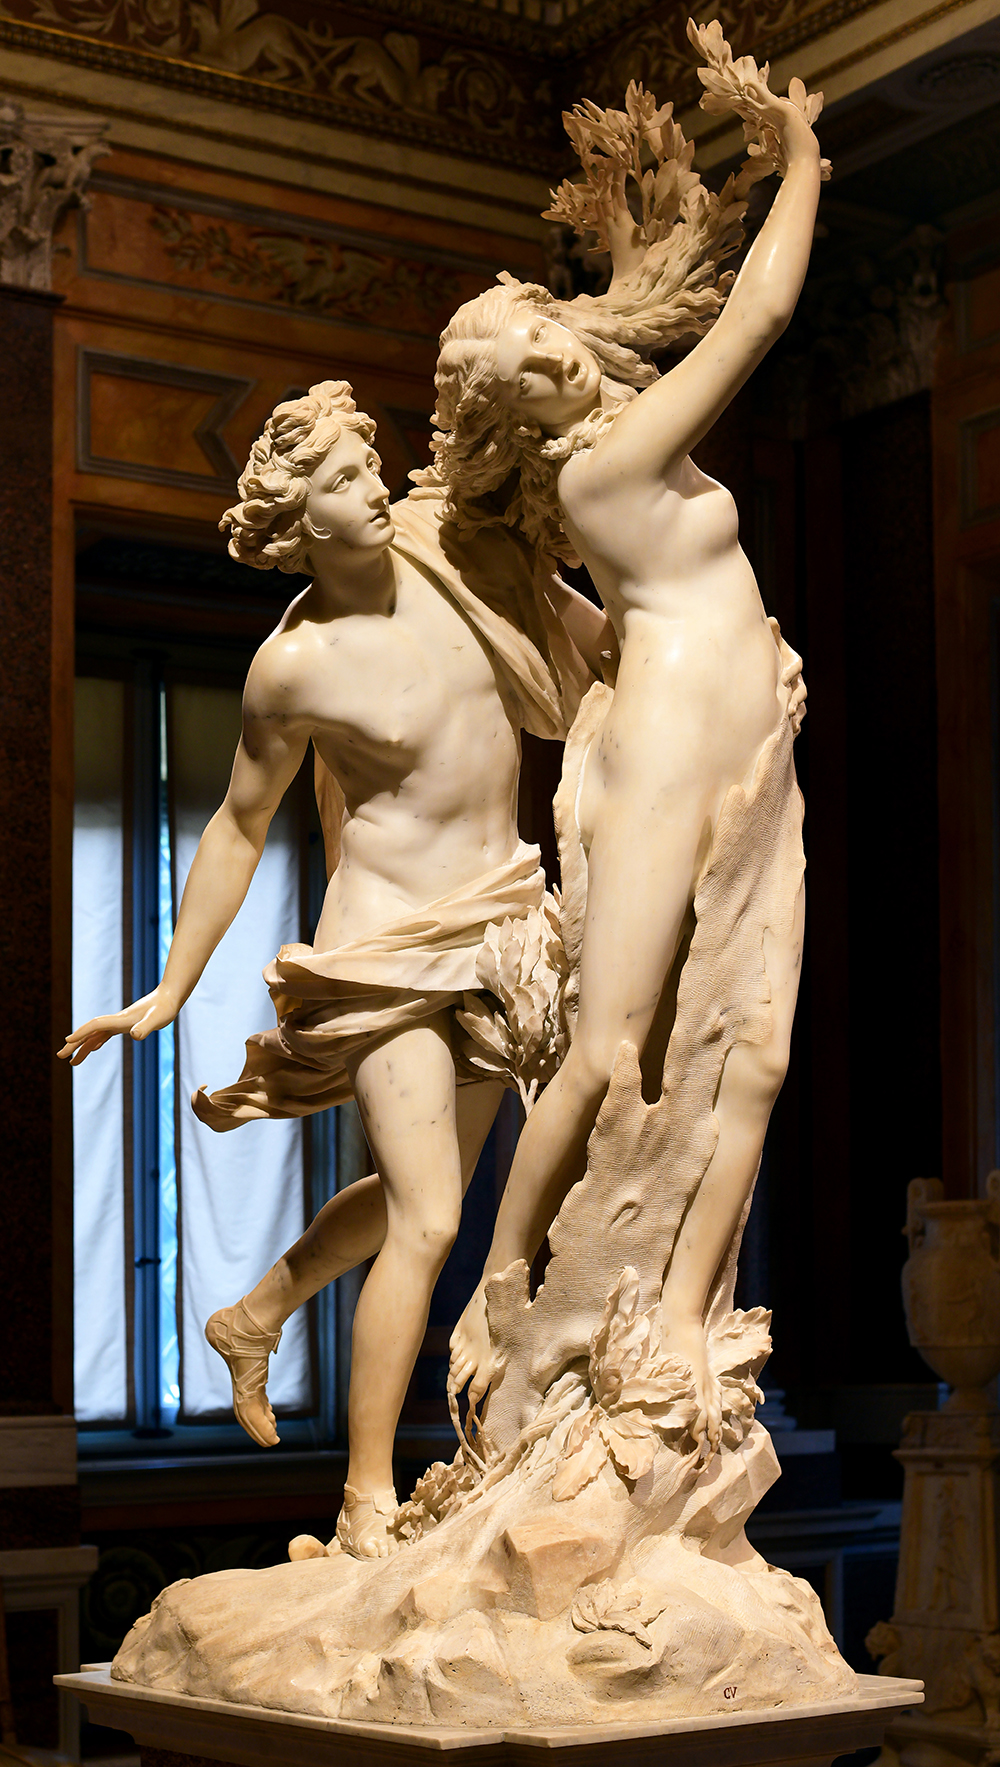 Apollo and Daphne, sculpture by Gianlorenzo Bernini, c. 1618–25. Photograph by Architas. Wikimedia Commons (CC BY-SA 4.0).